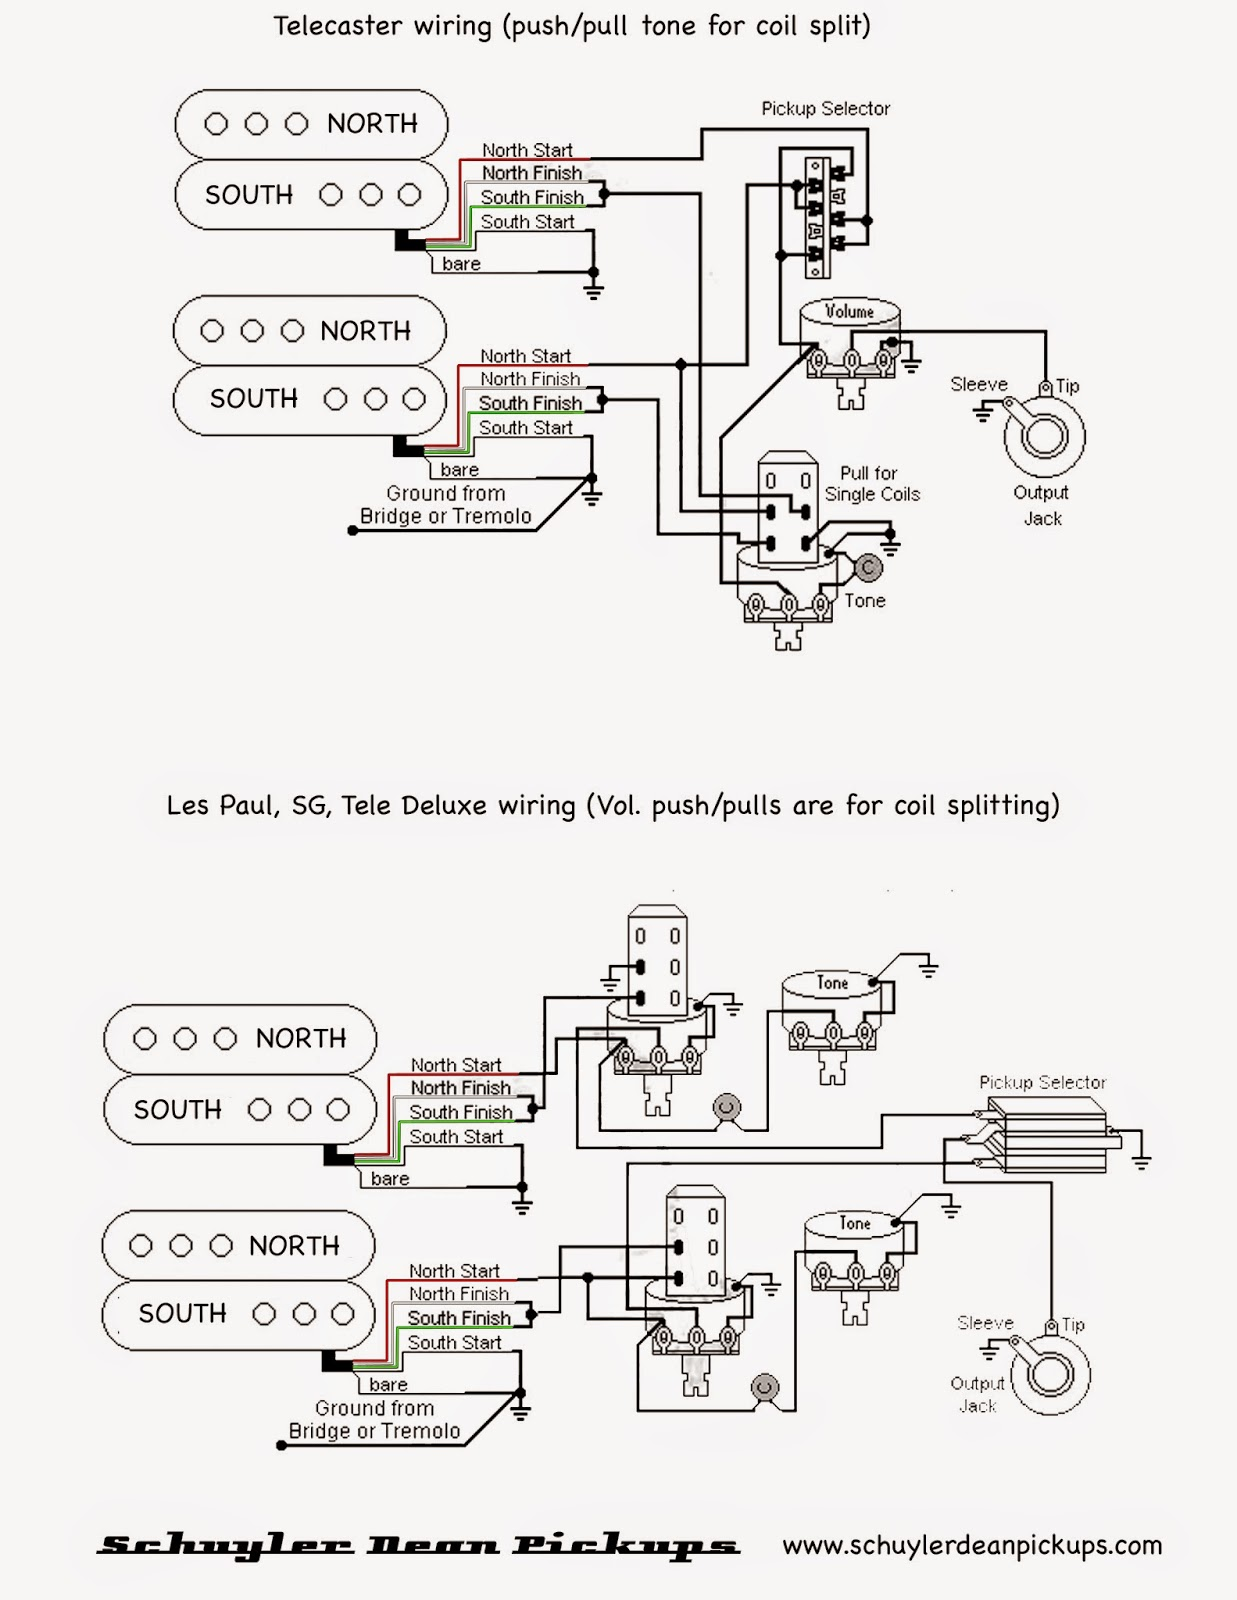 Wiring%2Bdiagram%2BTele LP schuyler dean pickups october 2014 les paul humbucker wiring diagram at webbmarketing.co